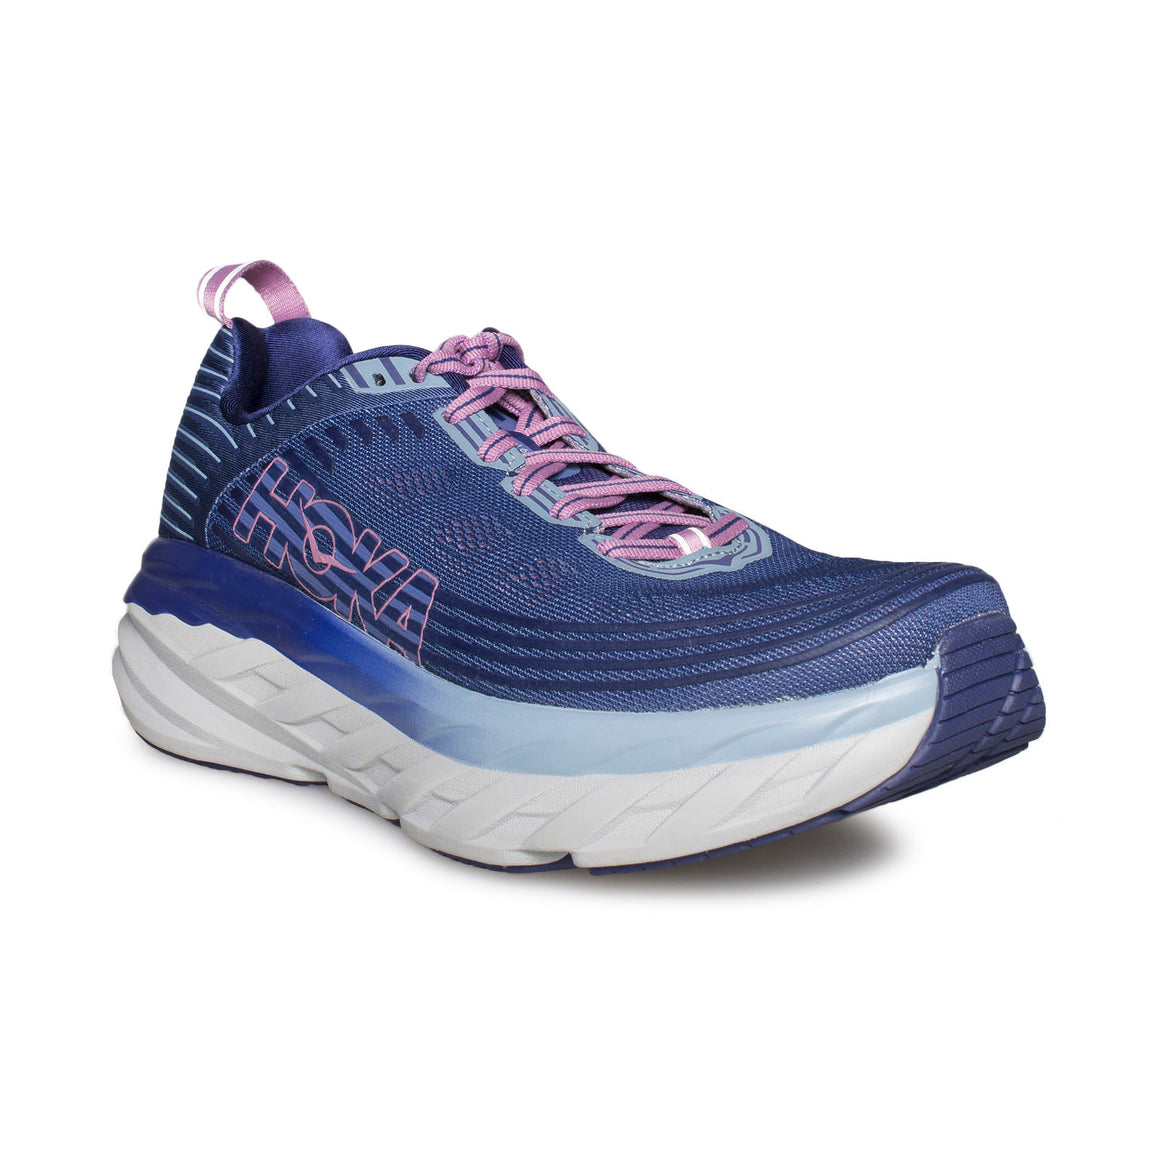 HOKA ONE ONE Bondi 6 Marlin / Blue Ribbon Running Shoes - Women's